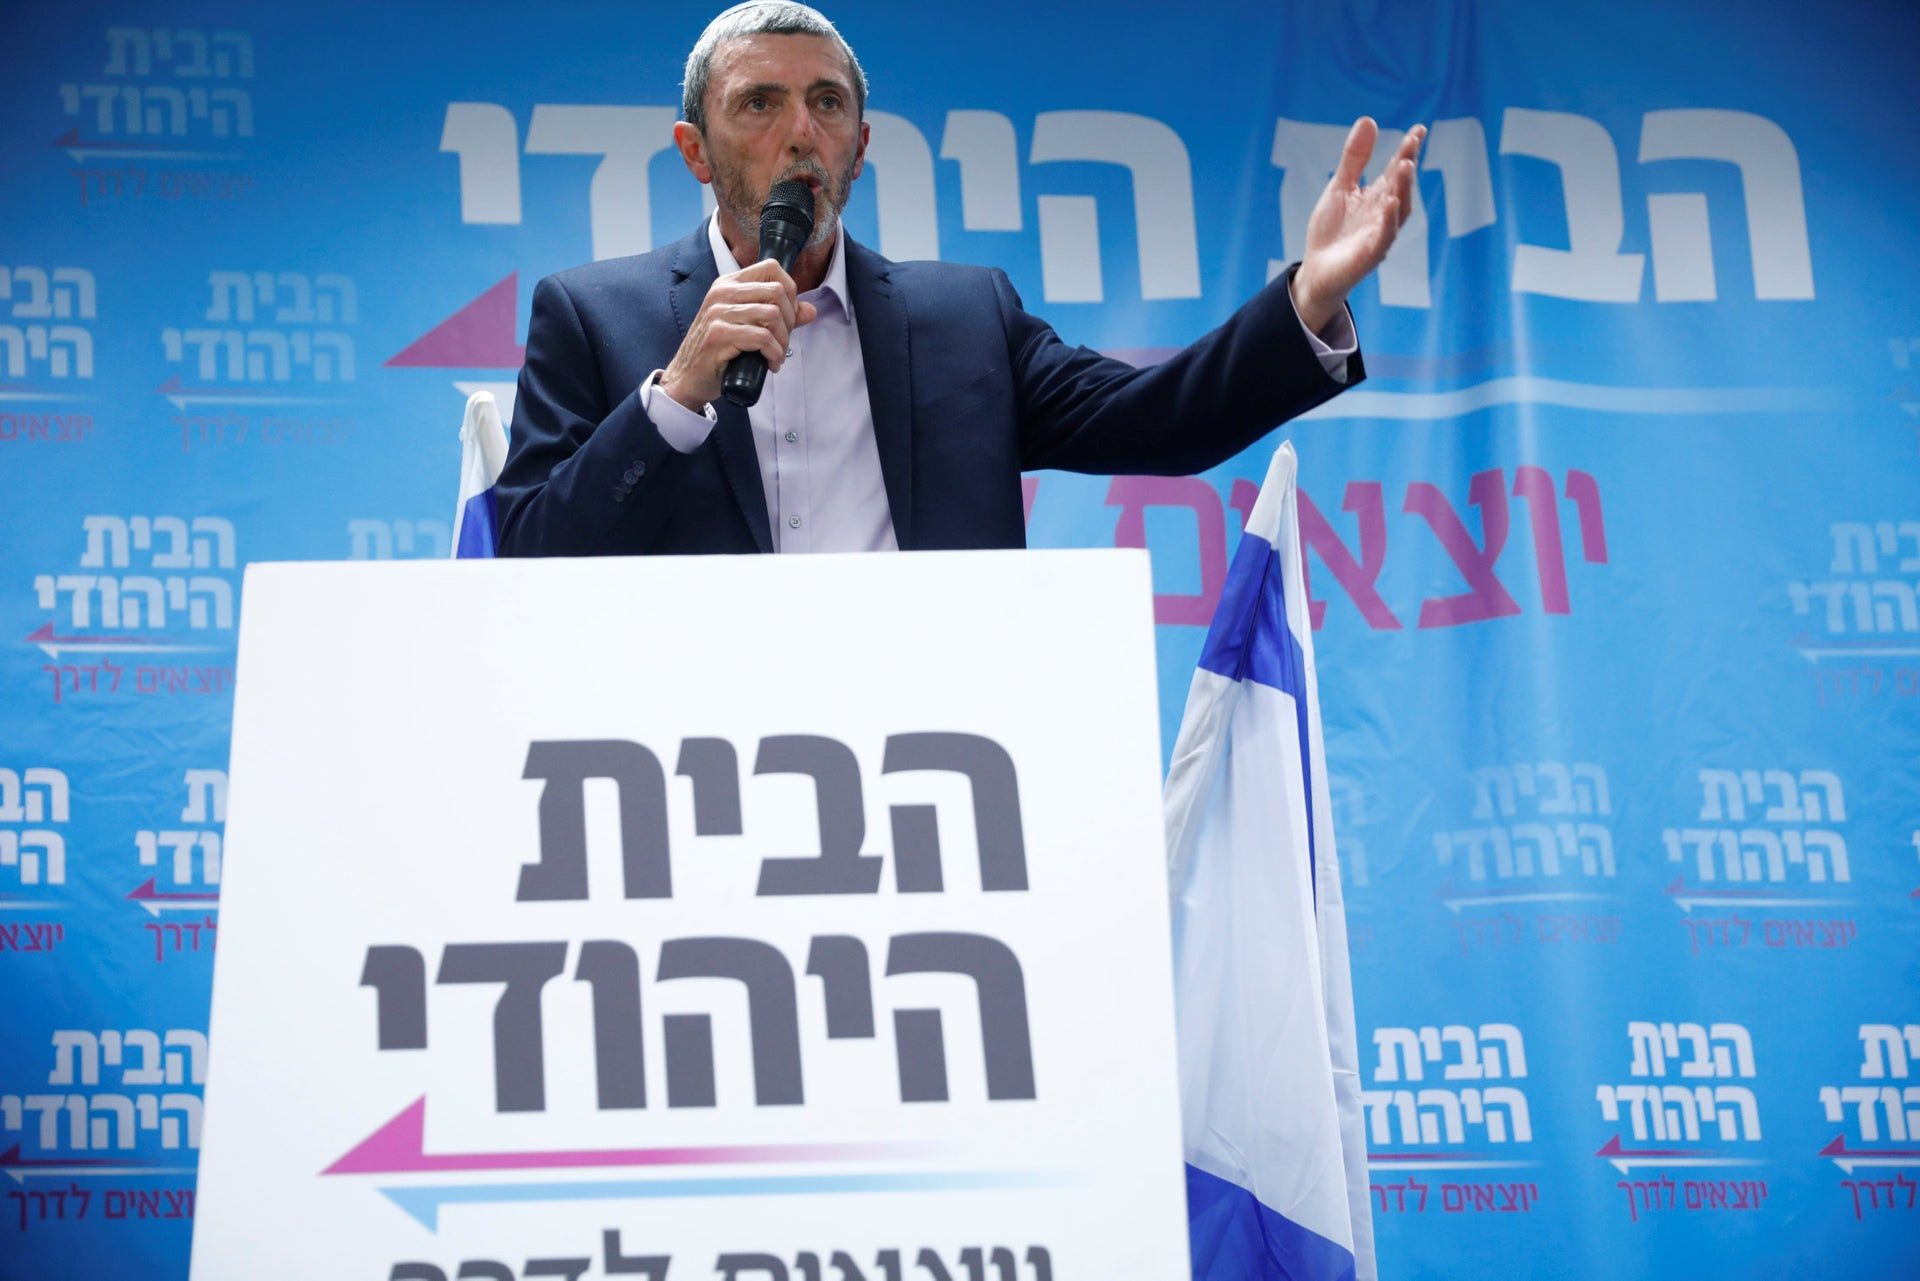 Habayit Hayehudi head Rafi Peretz at the party meeting that endorsed its merger with the racist far right Otzma Leyisrael party 20 February, 2019